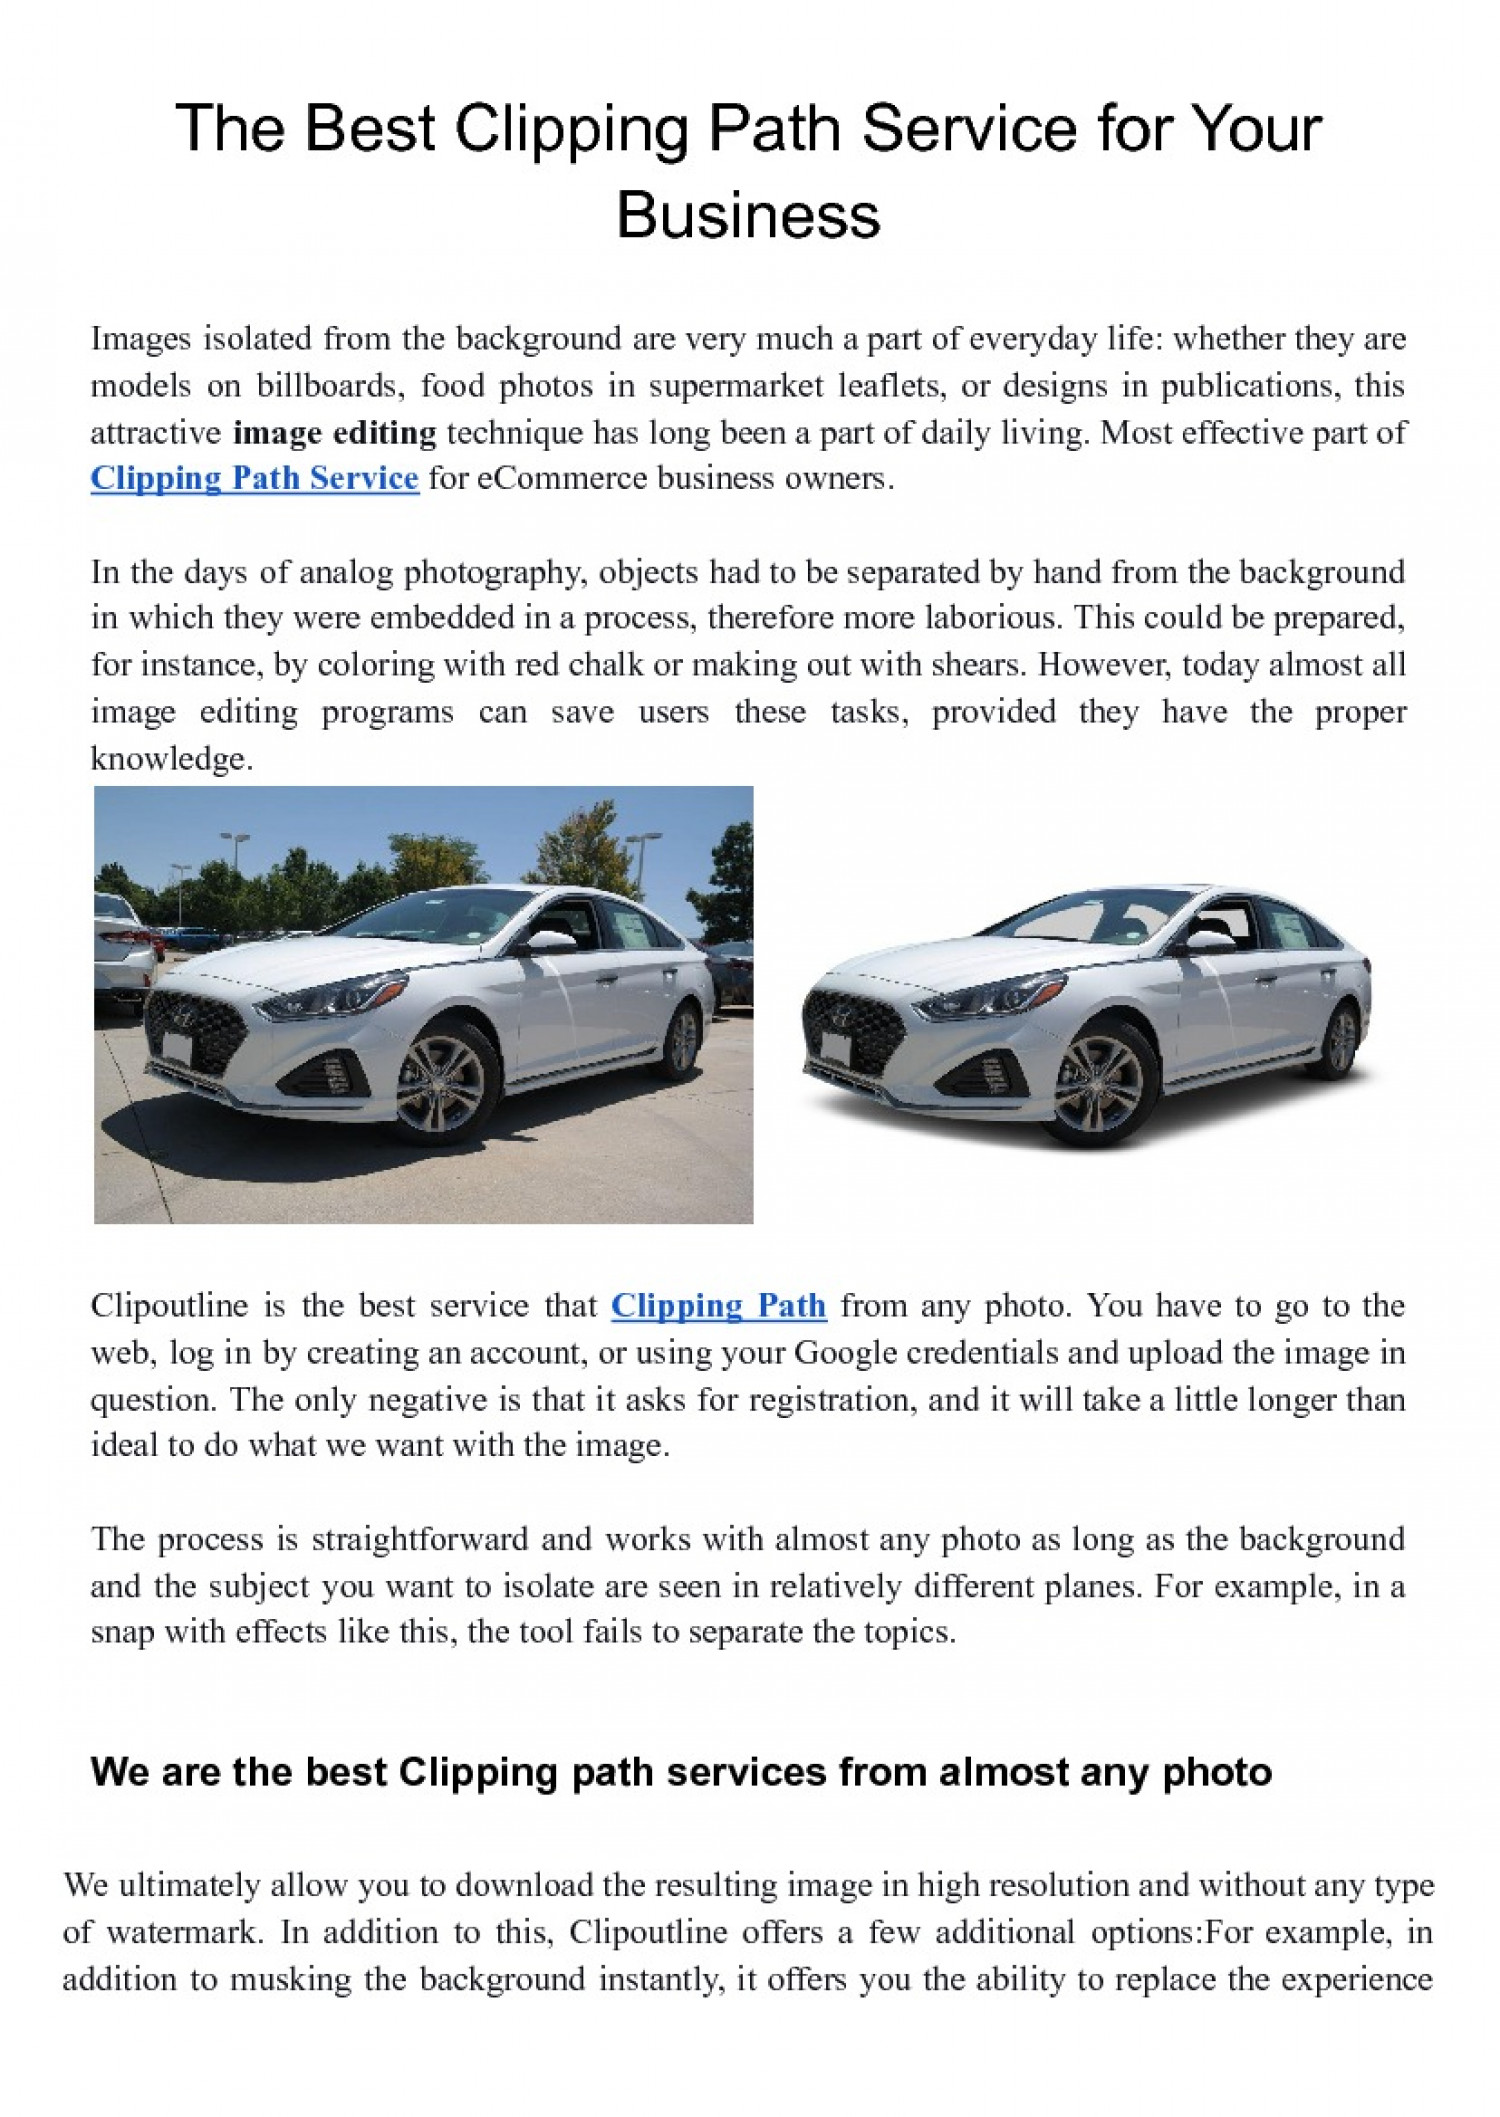 The Best Clipping Path Service for Your Business Infographic